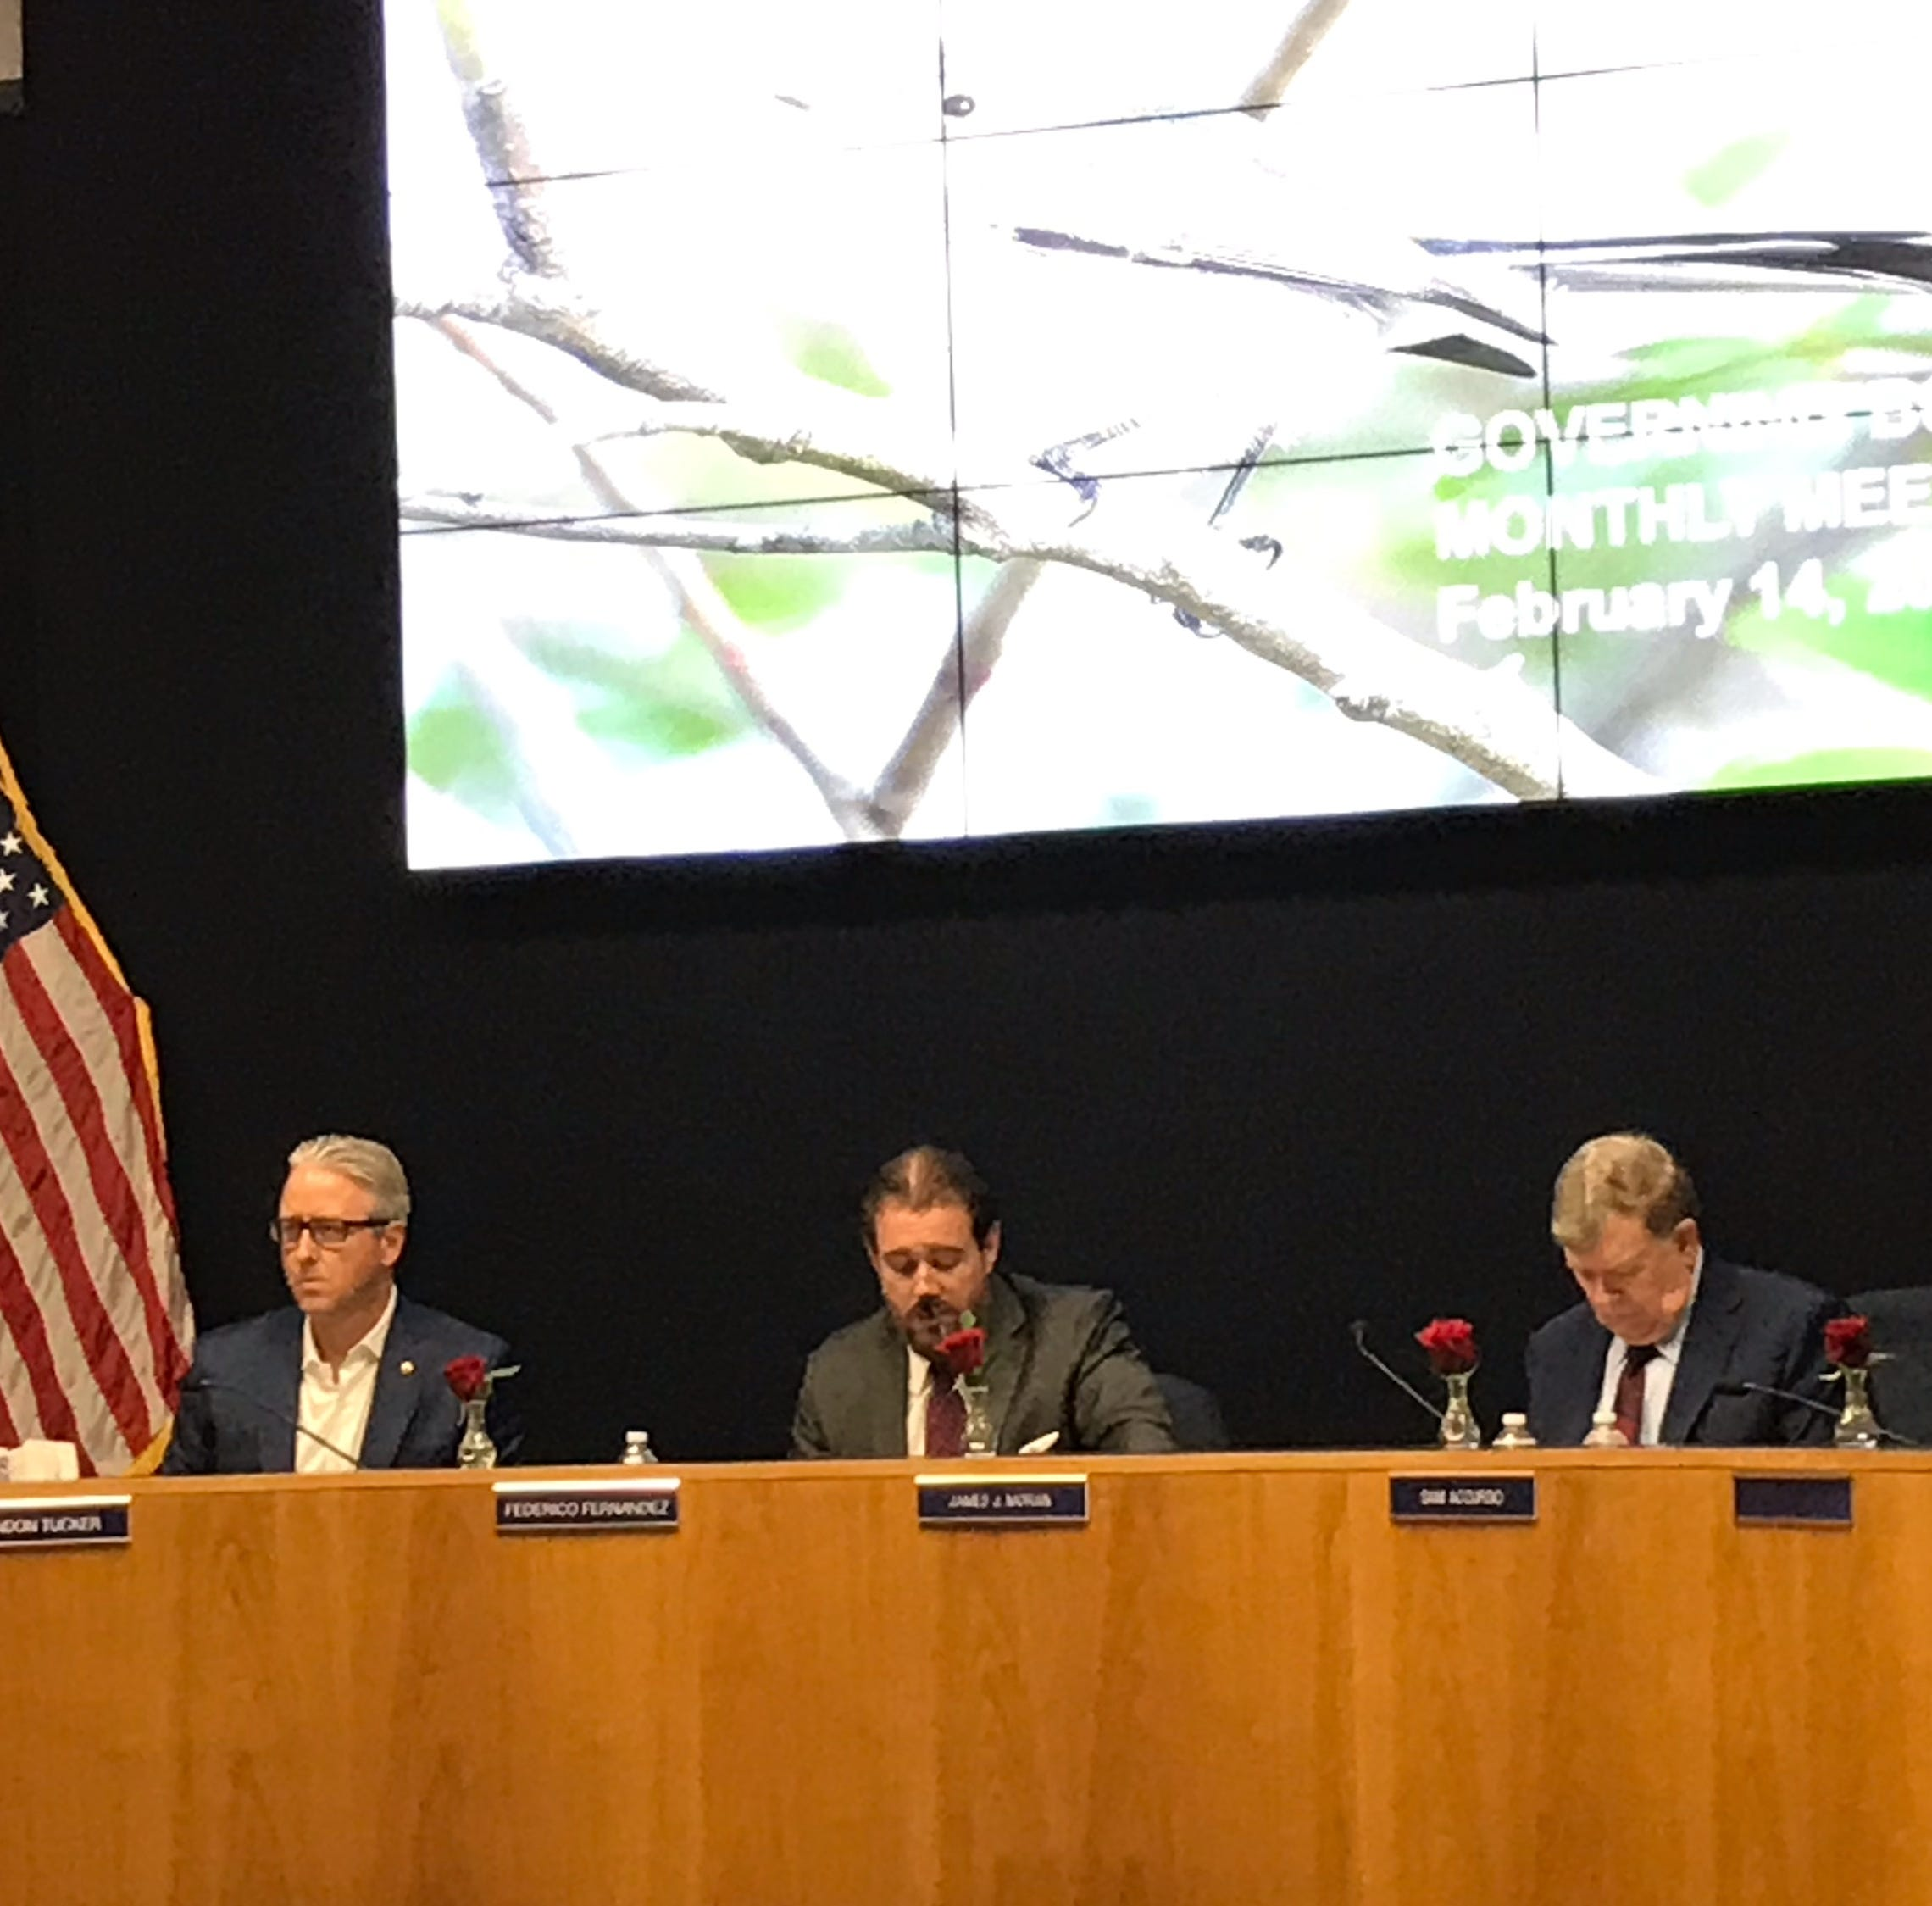 SFWMD executive director announces resignation in front of board that lacked quorum